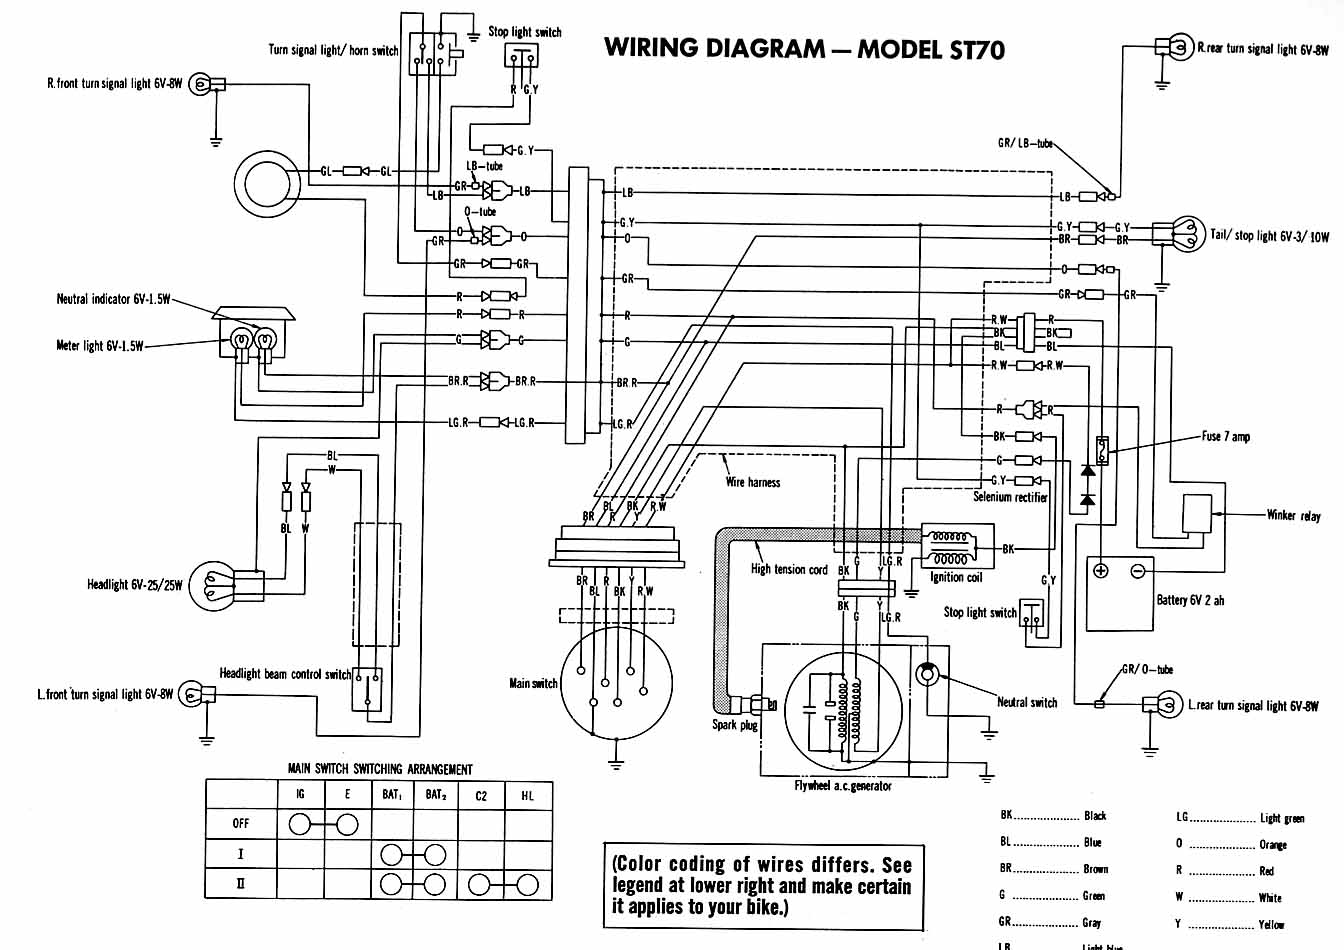 Honda Motorcycle 125cc Wiring Diagram Smart Diagrams Minimoto Alternator Goldwing 1800 Ignition